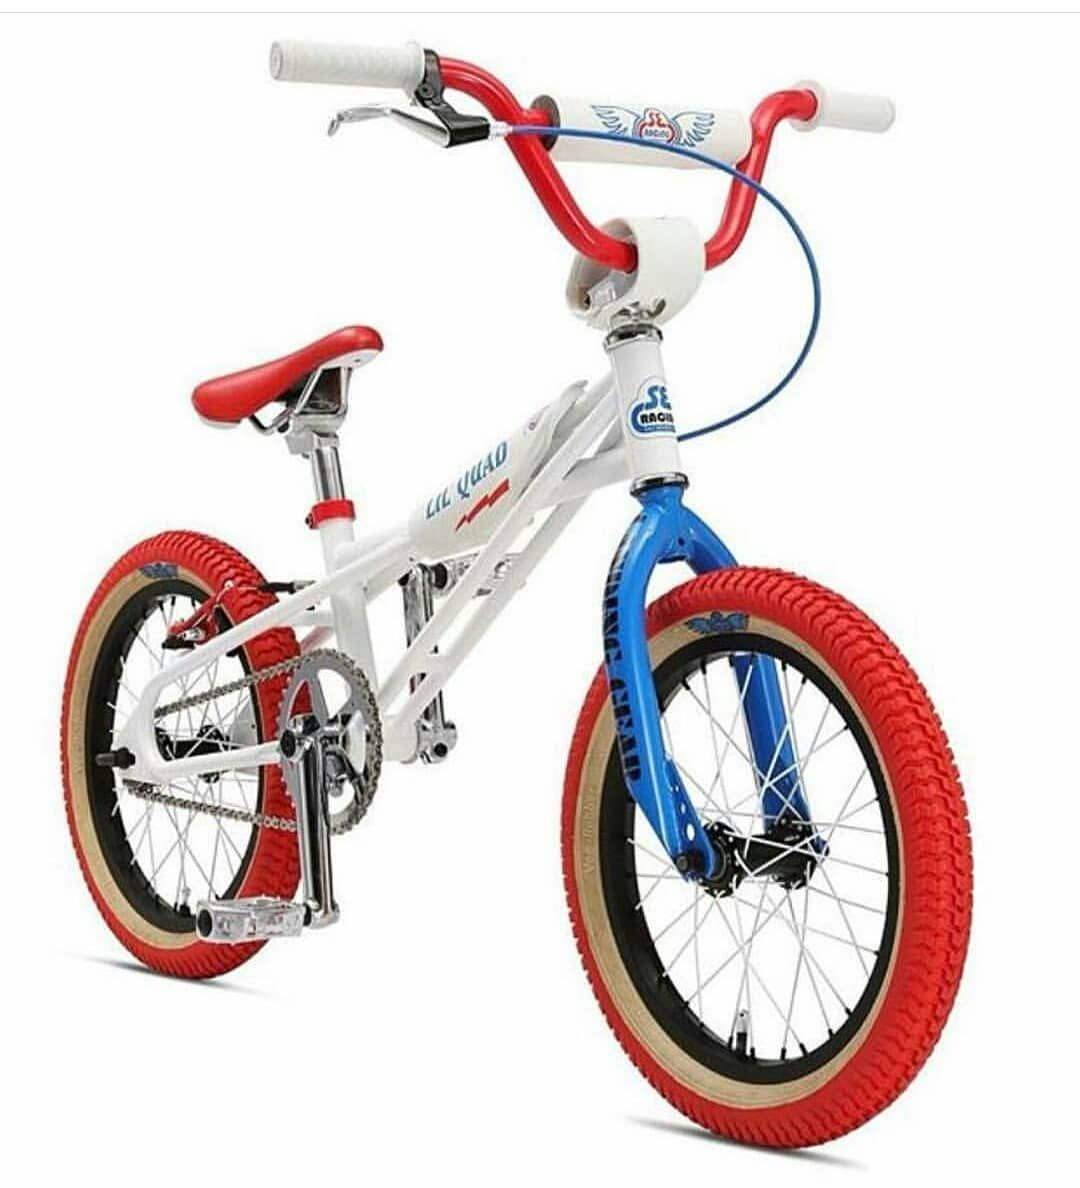 Go Check Them Out They Have Bikes For The Whole Family Sebikes